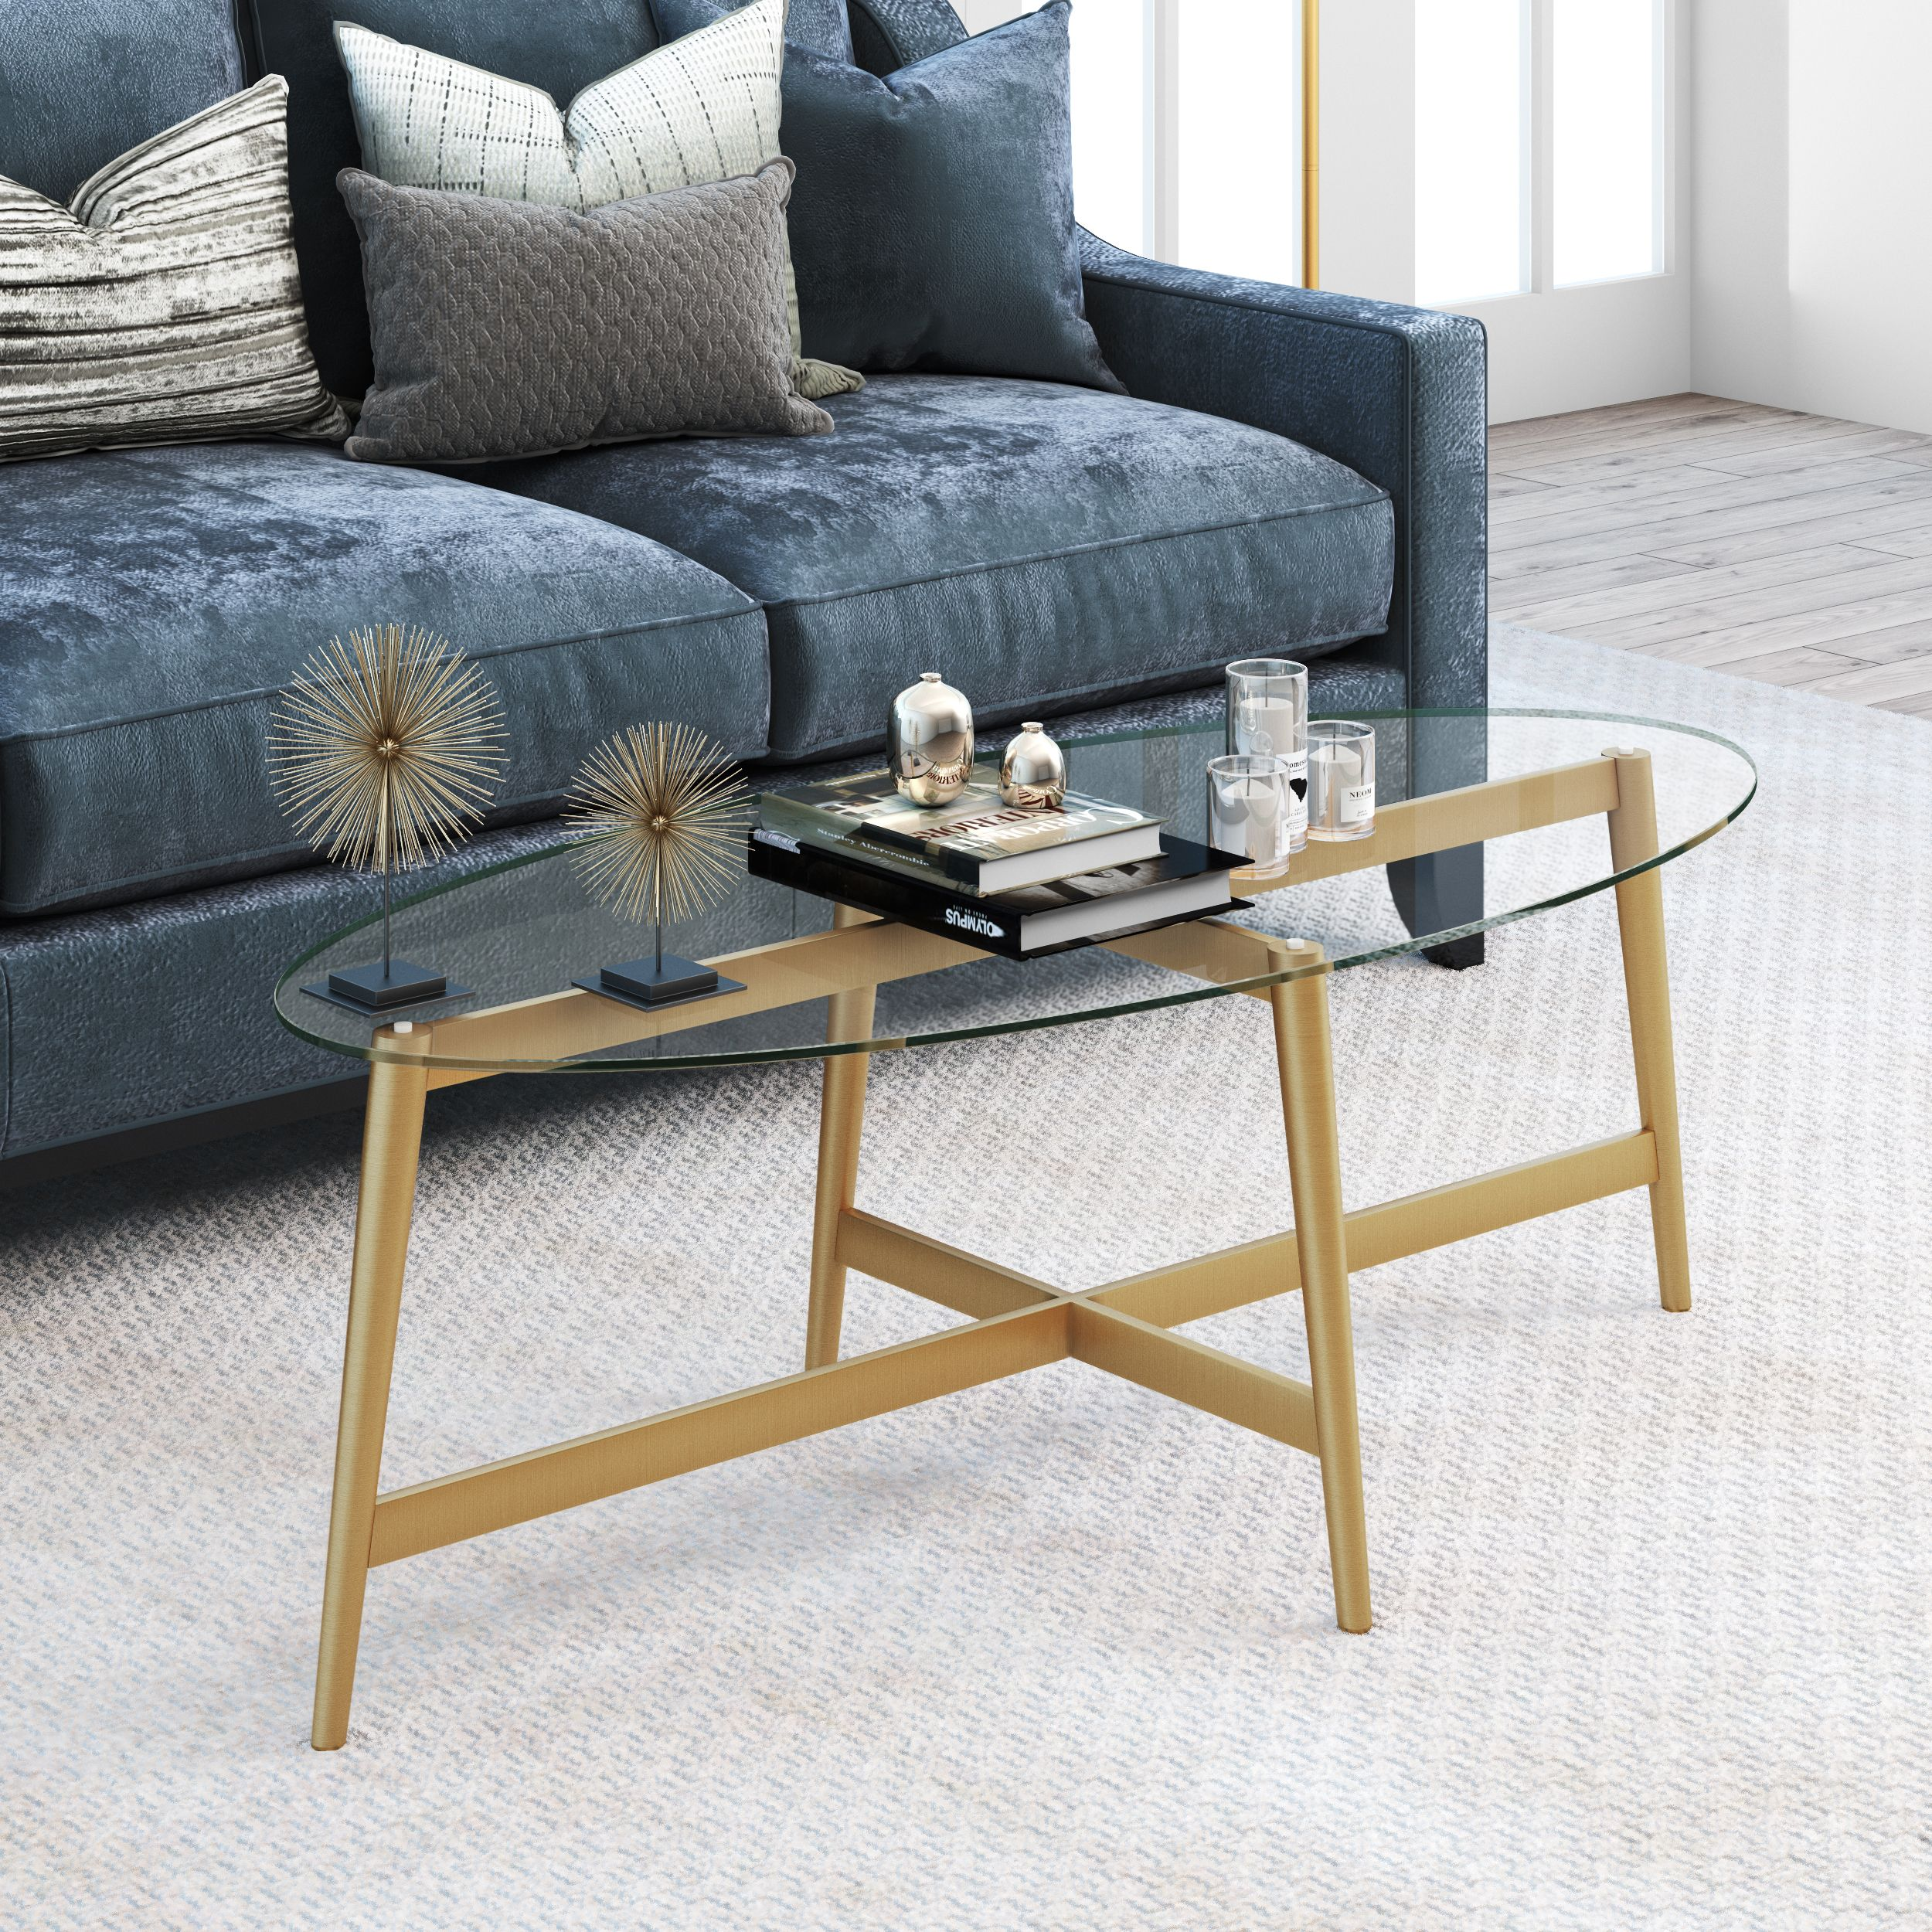 Olson oval coffee table in gold